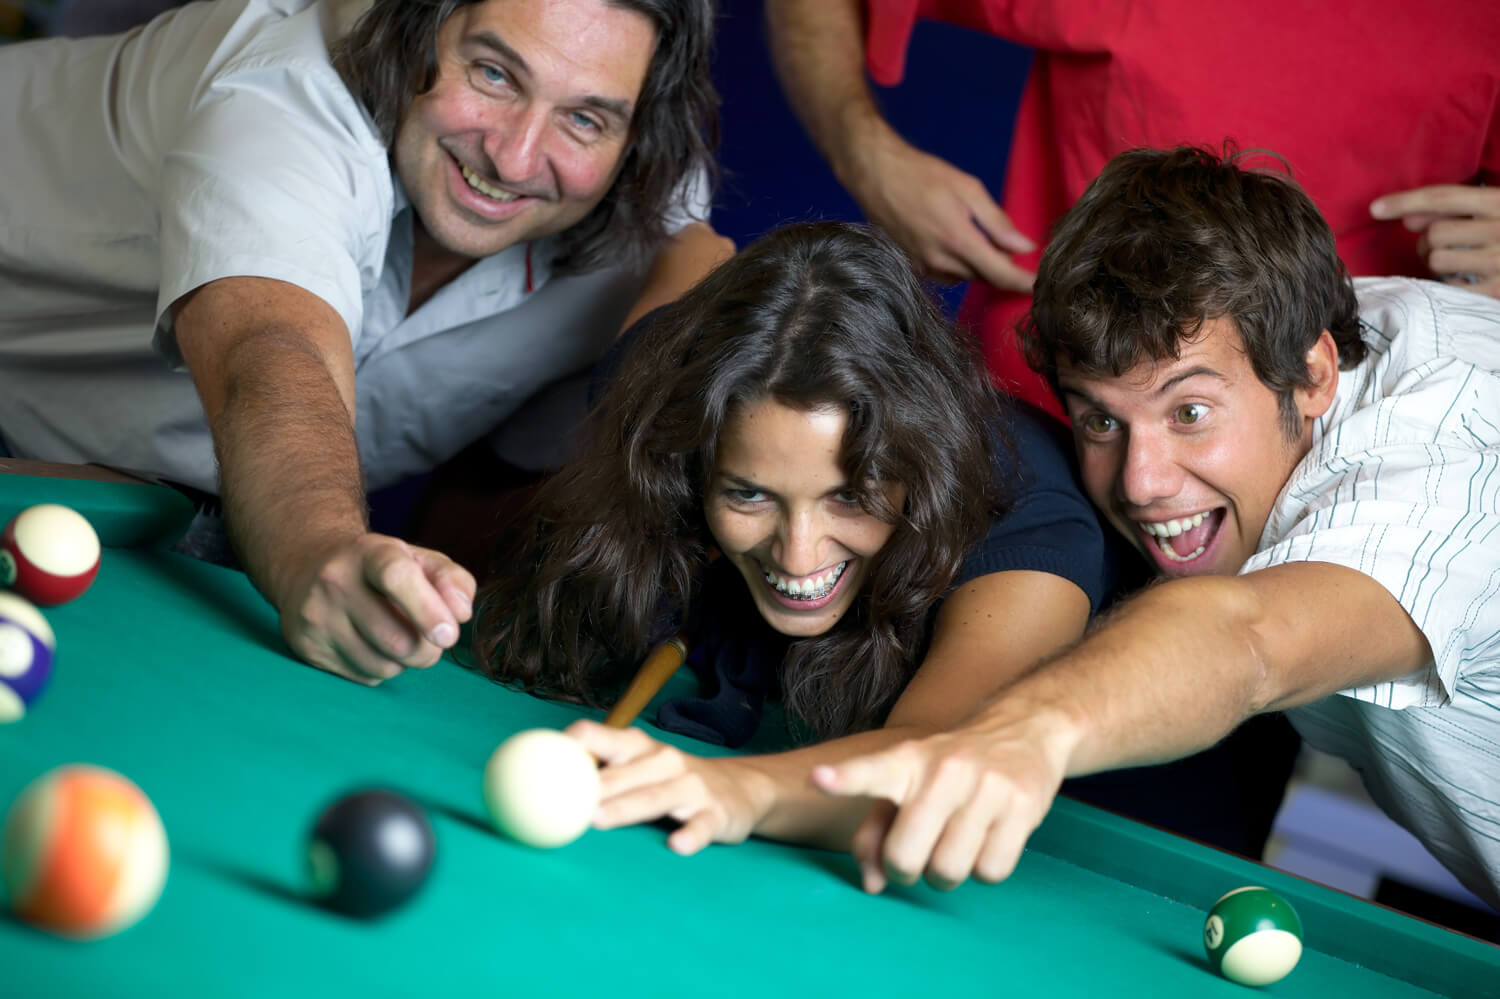 Smiling players having a game of pool on the home table